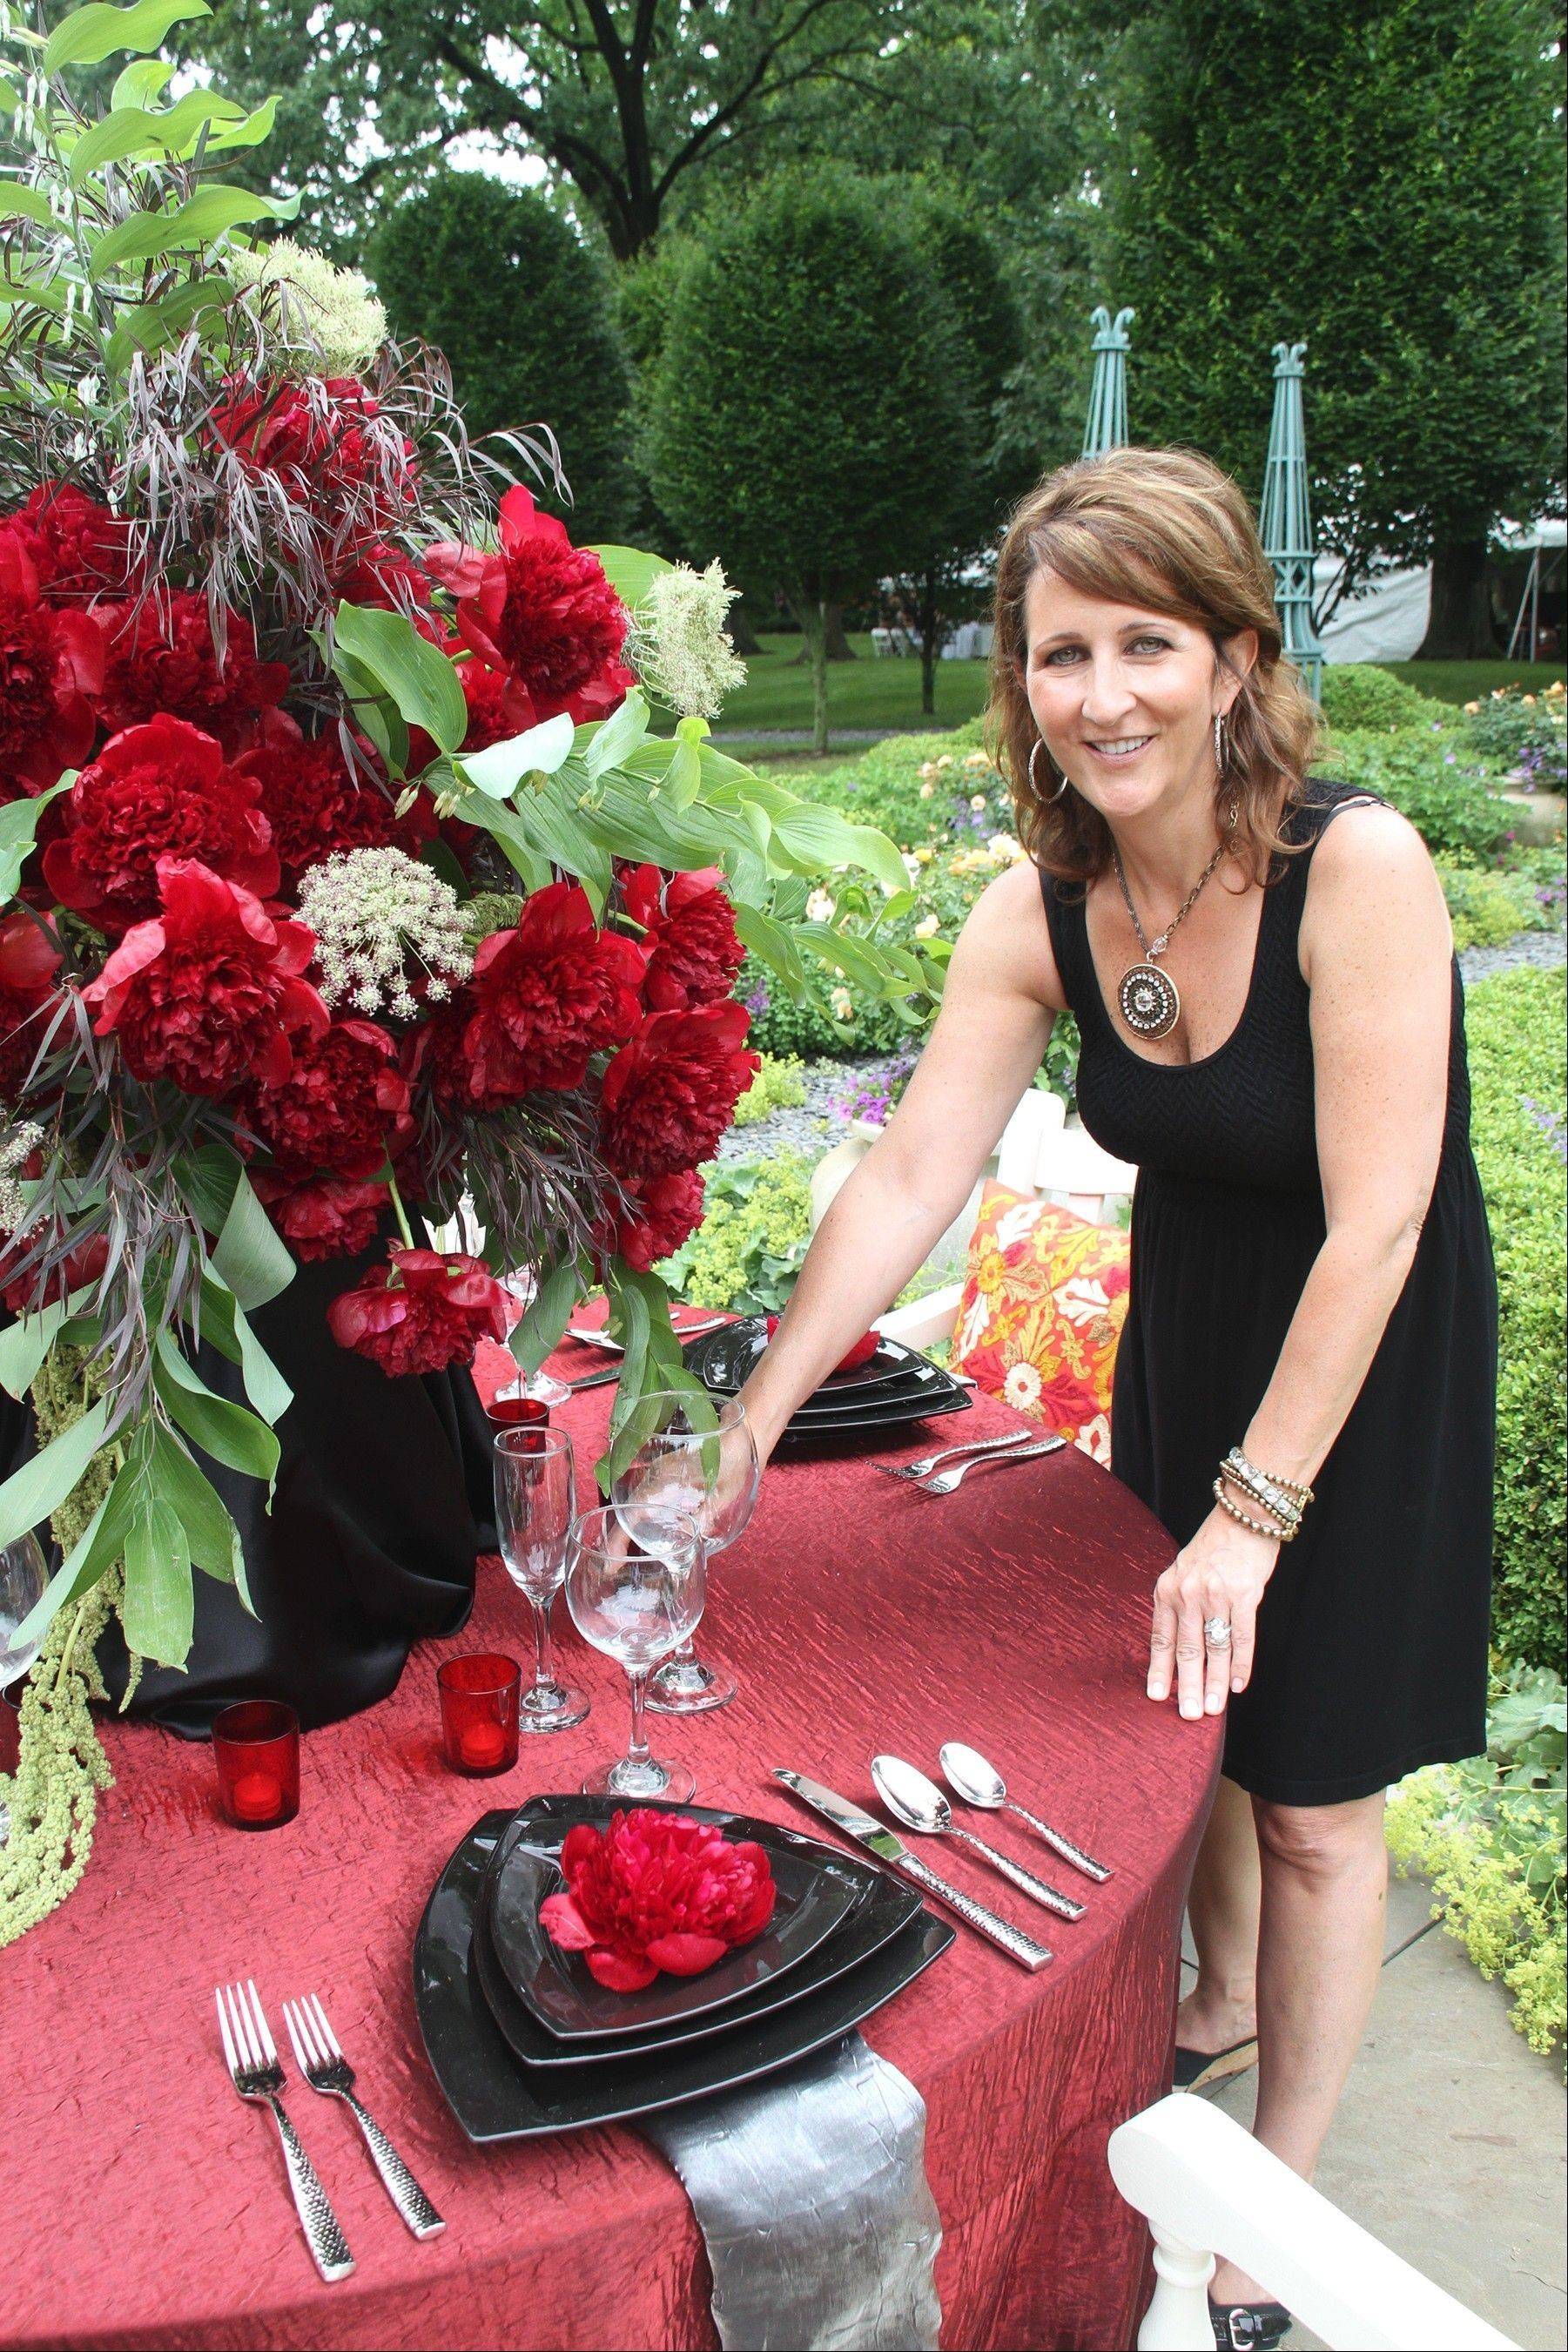 Sue Foley, co-owner of POSH Services, adds the finishing touches to a vignette at Garden #1 in preparation for the 13th annual Barrington Country Garden & Antique Faire. The event last month drew more than 850 visitors.